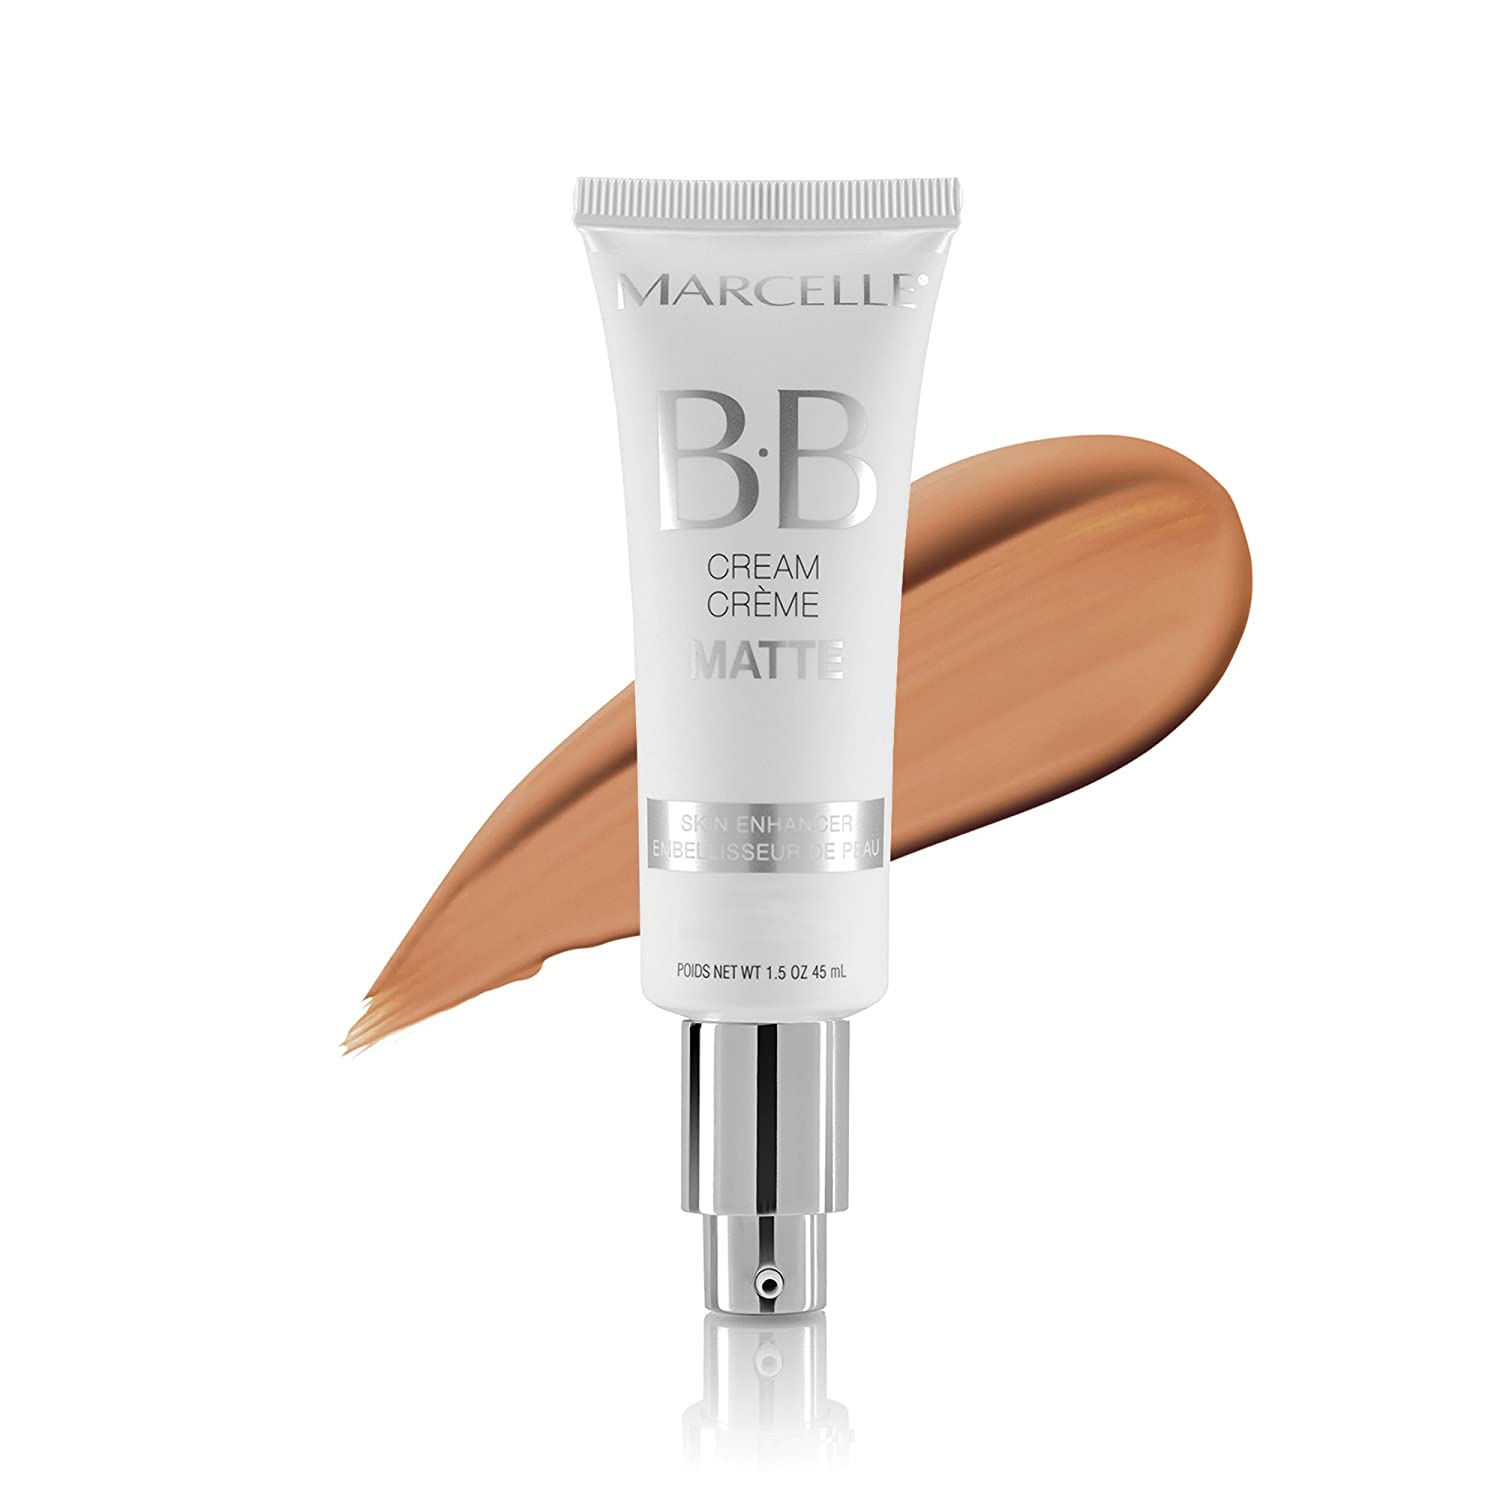 Marcelle BB Cream Matte, Medium to Dark, Hypoallergenic and Fragrance-Free, 1;5 Ounces